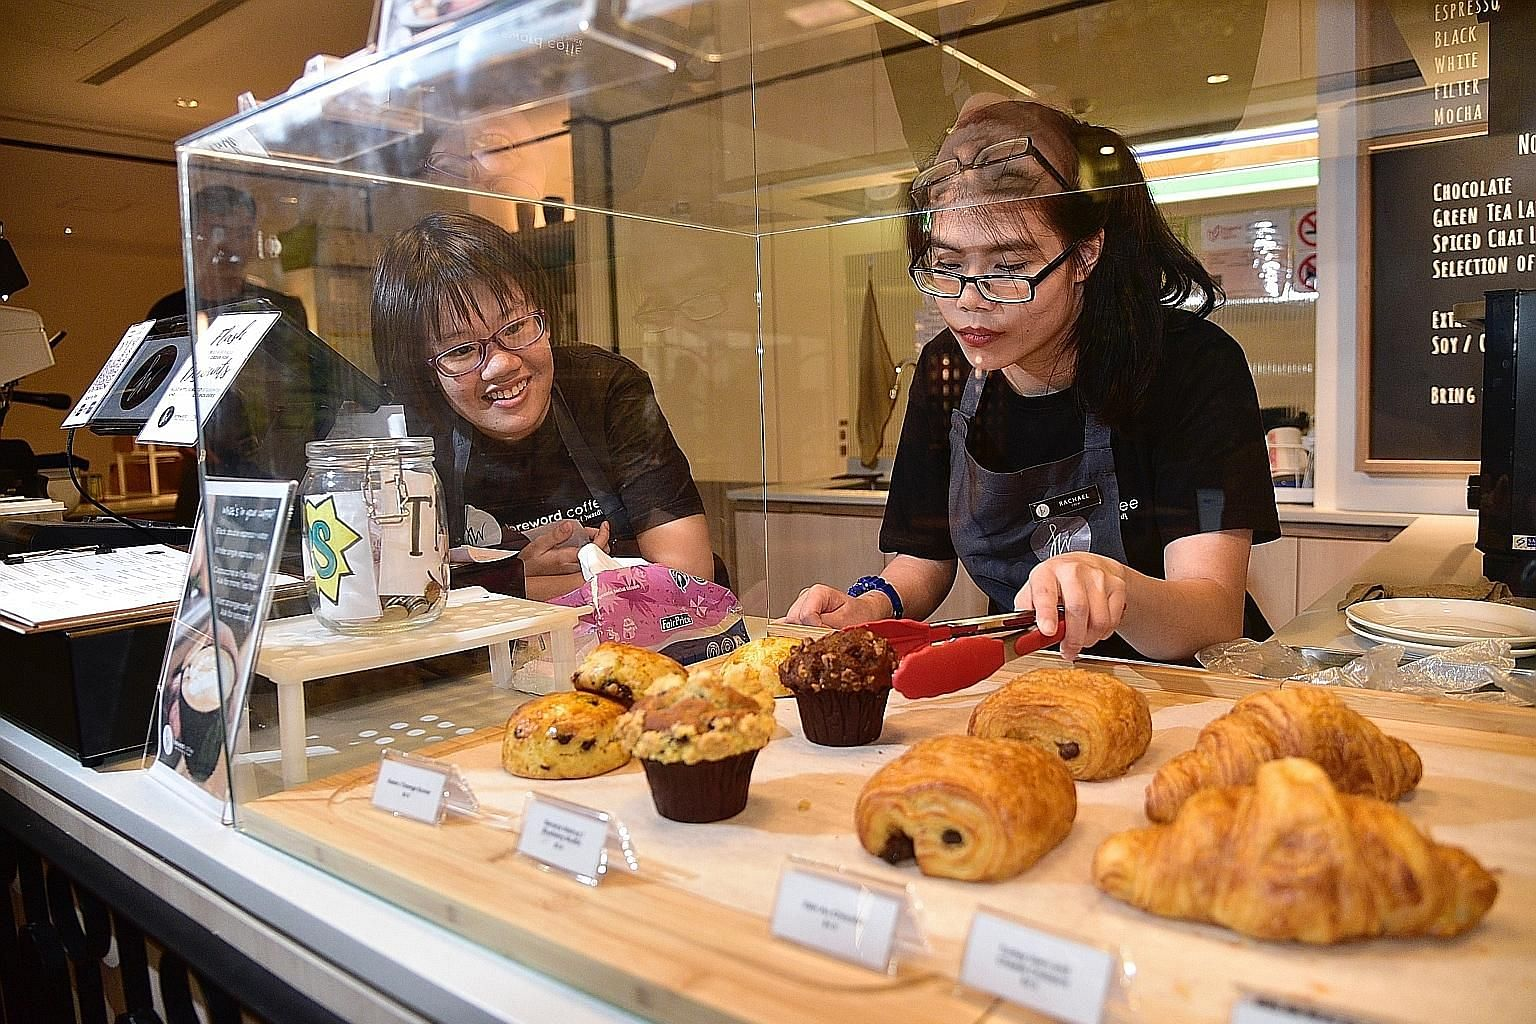 The Special Employment Credit scheme offers a monthly wage subsidy of about $200 to employers for every employee with a disability who is hired, like Ms Carmen Tan Yin Xin (left), 23, and Ms Rachael Lum Yuan Ting, 19, who work at Foreword Coffee. But